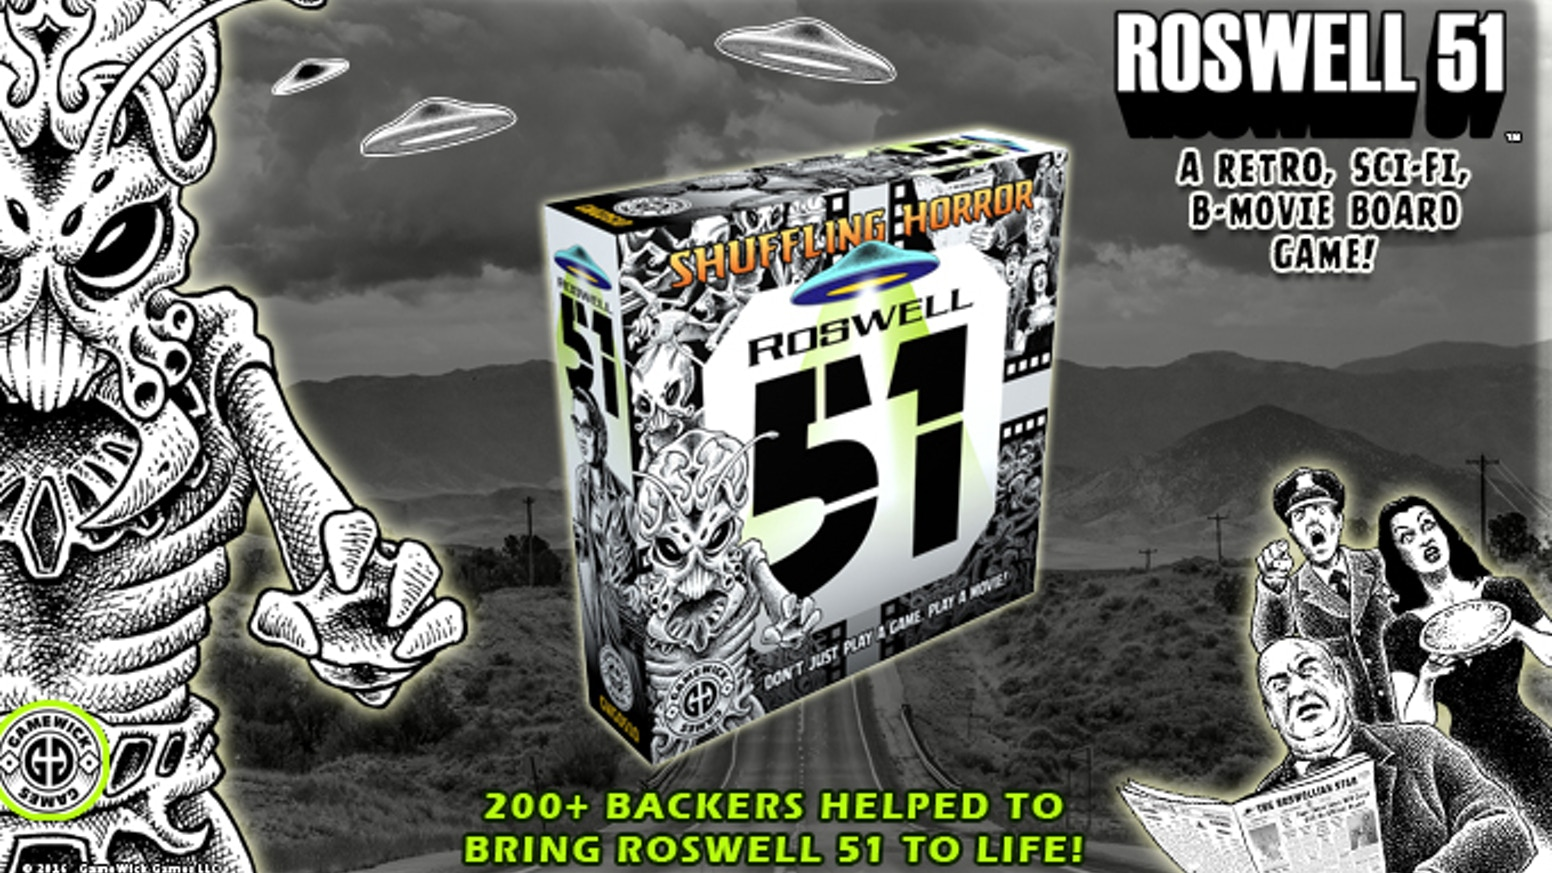 This action-packed sci-fi blockbuster won't be played in cinemas. It will be played on a tabletop near you. Get ready for Roswell 51 - the board game that plays like a movie!